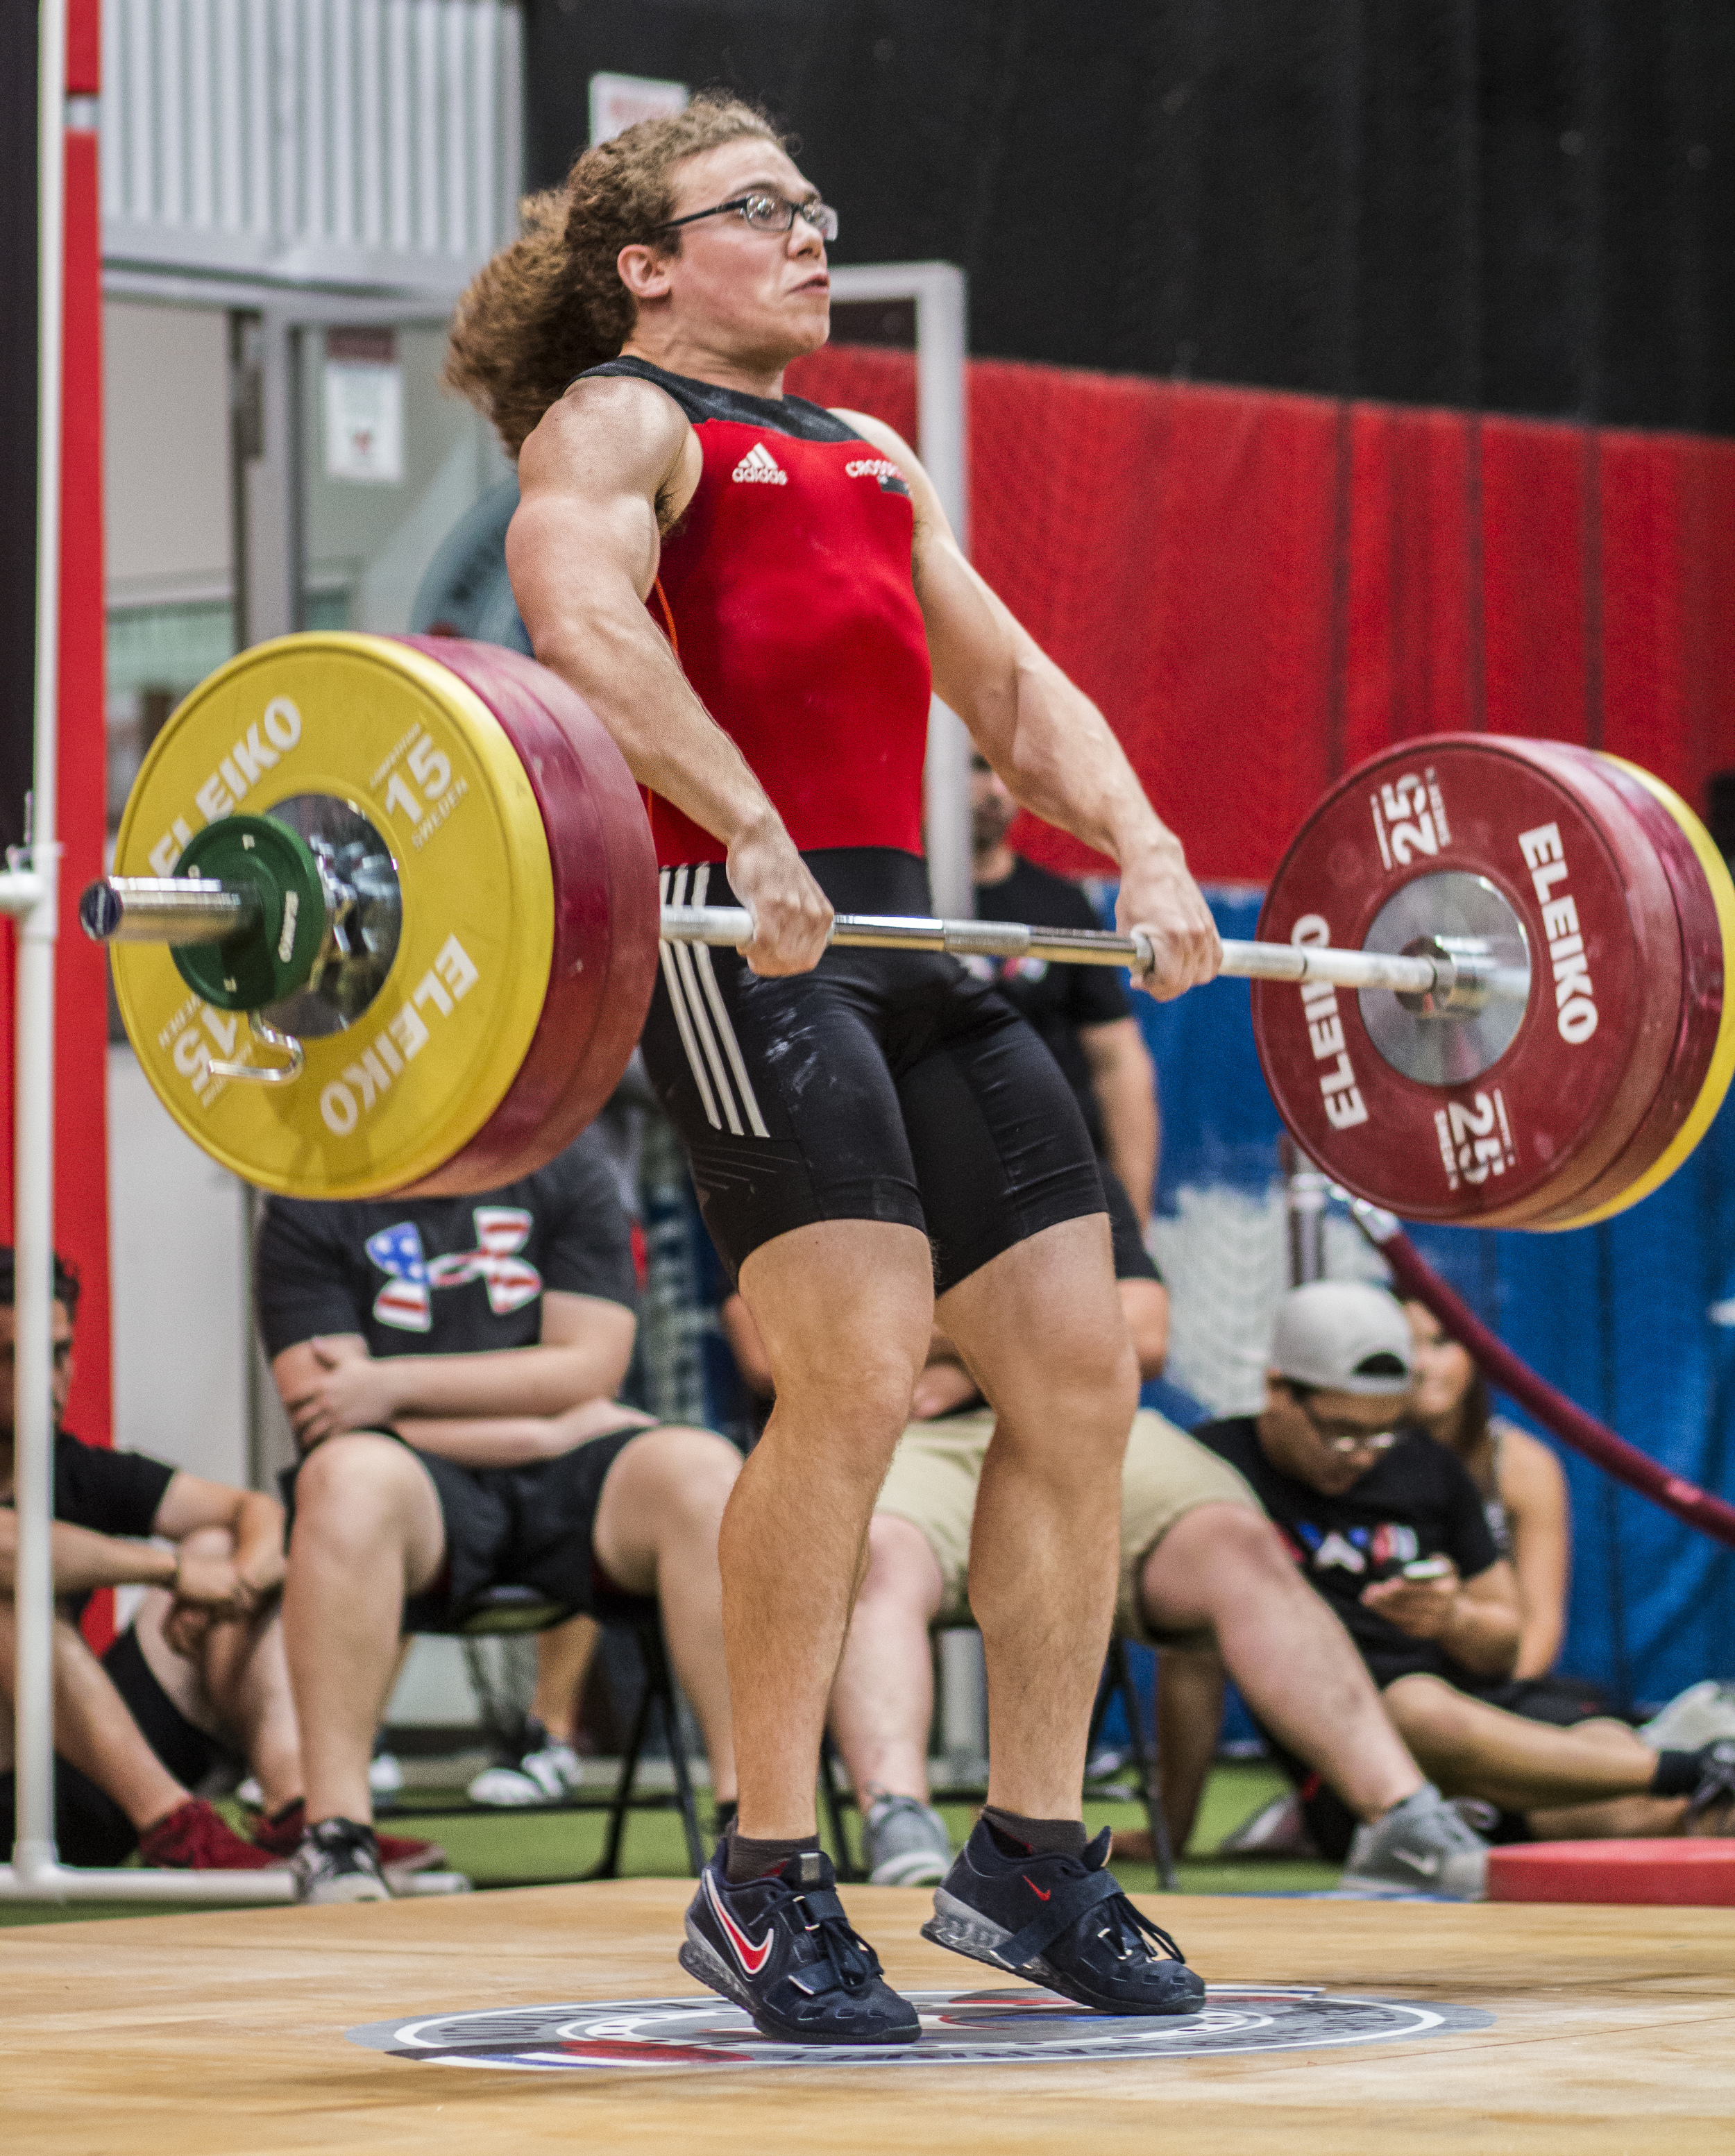 strong weightlifter_second pull_everyday lifters.jpg